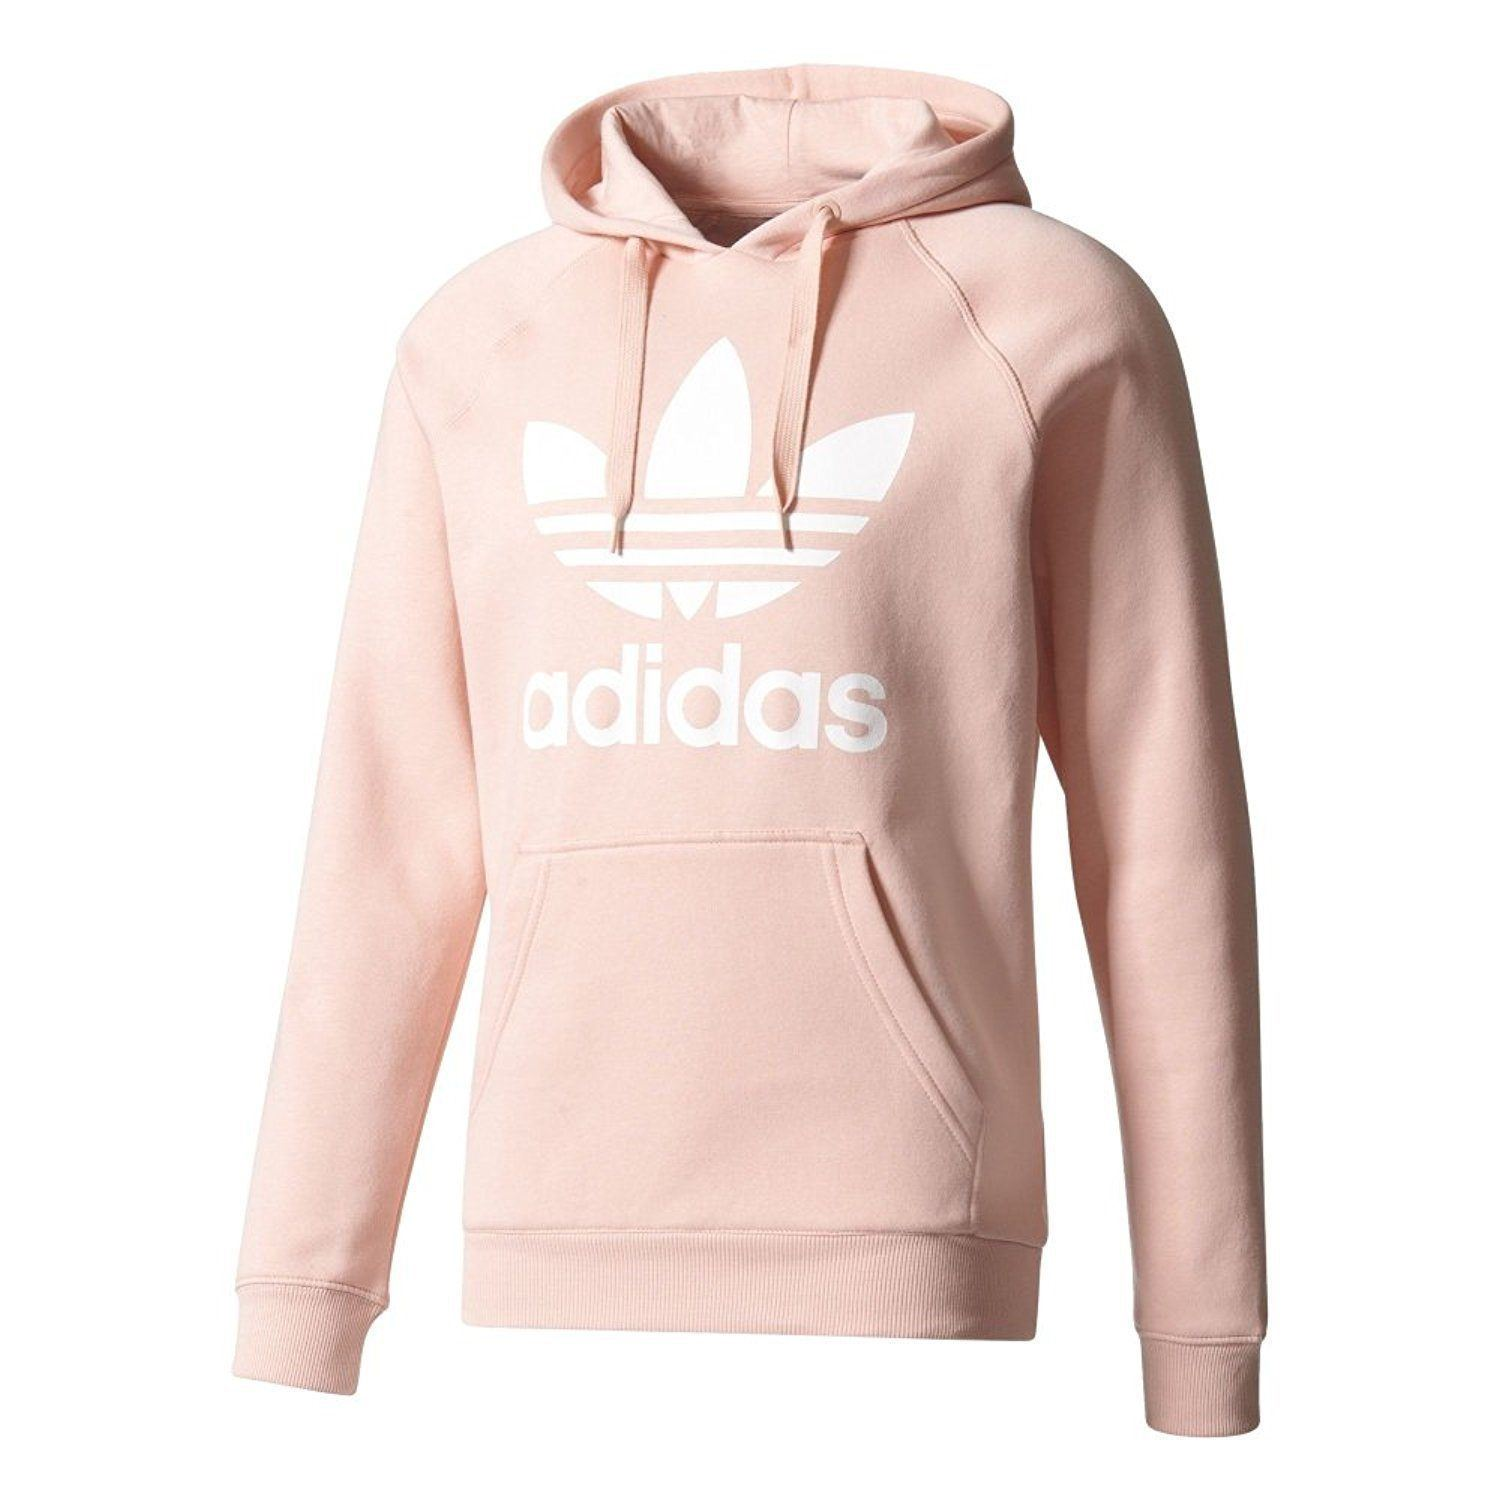 Details about adidas ORIGINALS TREFOIL HOODIE PINK MEN'S WARM COMFY HOODED RETRO PULLOVER NEW